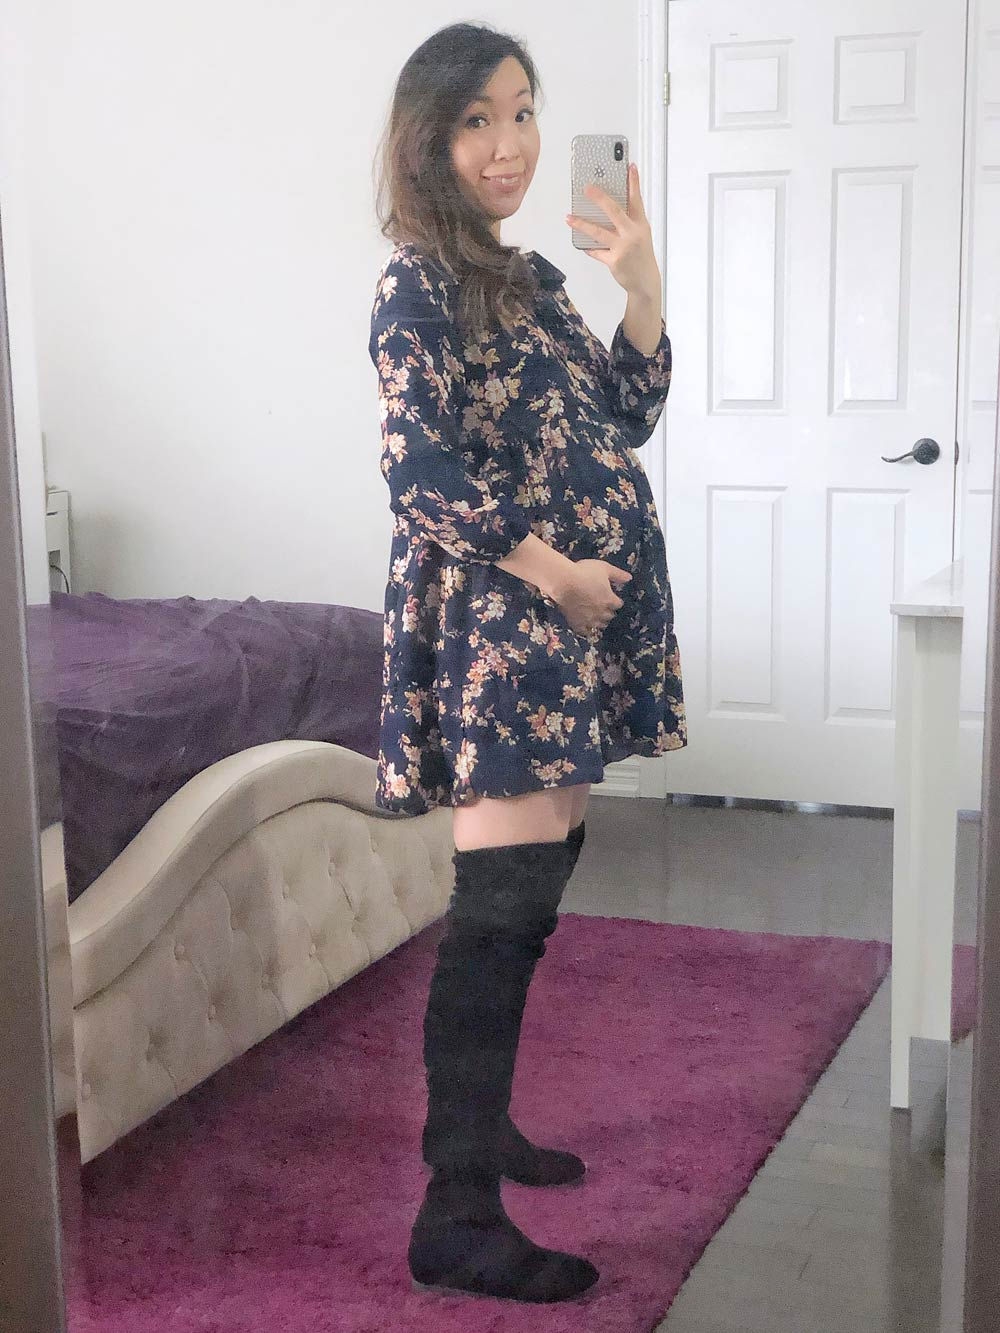 How to Look Stylish During Pregnancy - swing dress